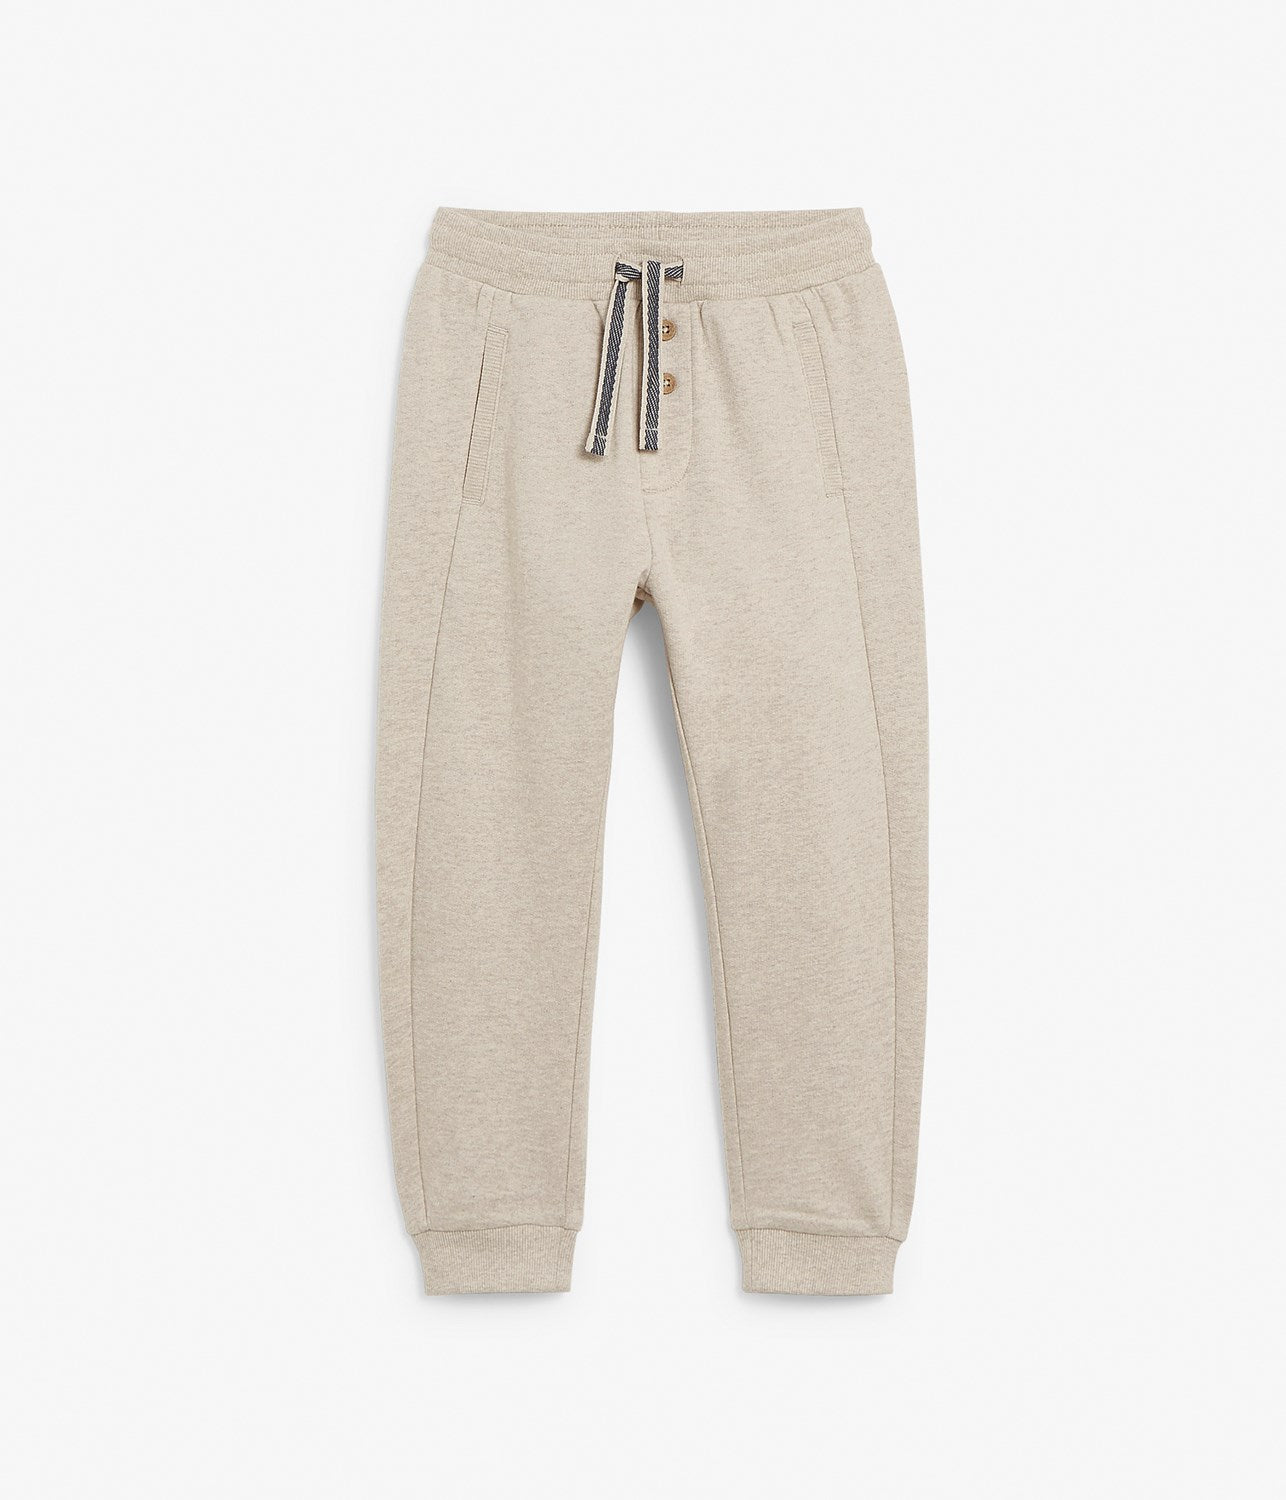 Kids beige drawstring sweatpants